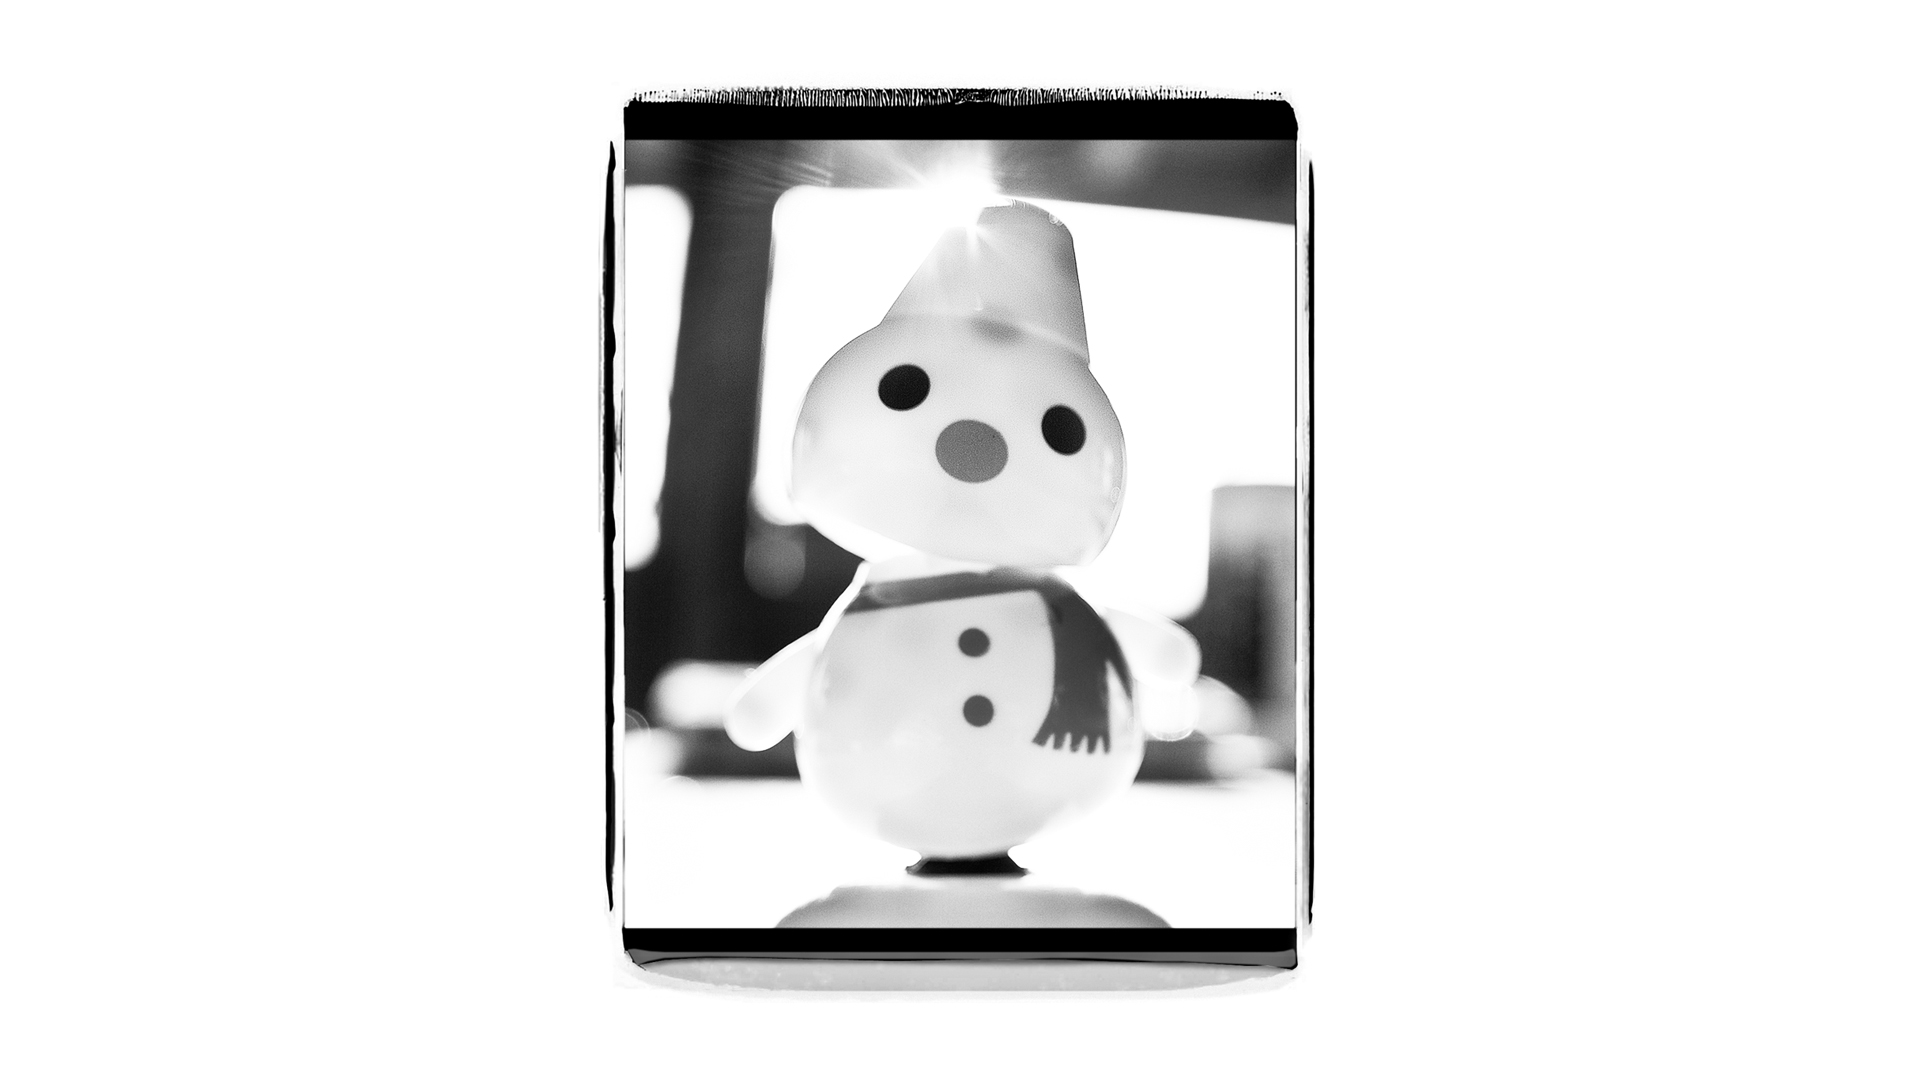 You can buy these little solar powered snowmen at the local hardware store right before winter and they rock from side to side when the sun hits the panel. Thing is we only see the sun about 5-10 times all winter so when they stop moving at the start of the first big dumps you know it's time for a beacon.